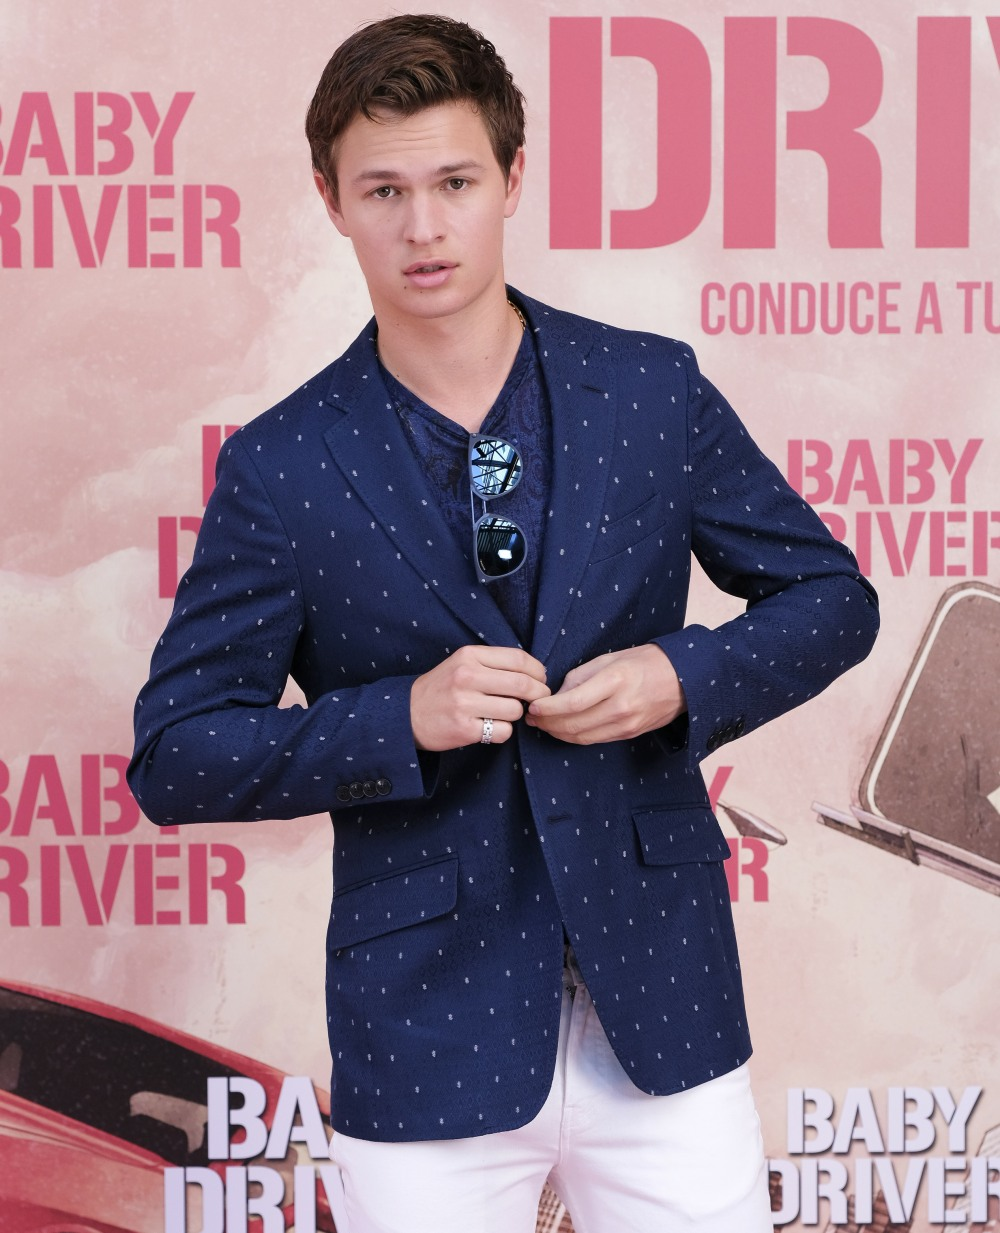 Madrid photocall for 'Baby Driver'